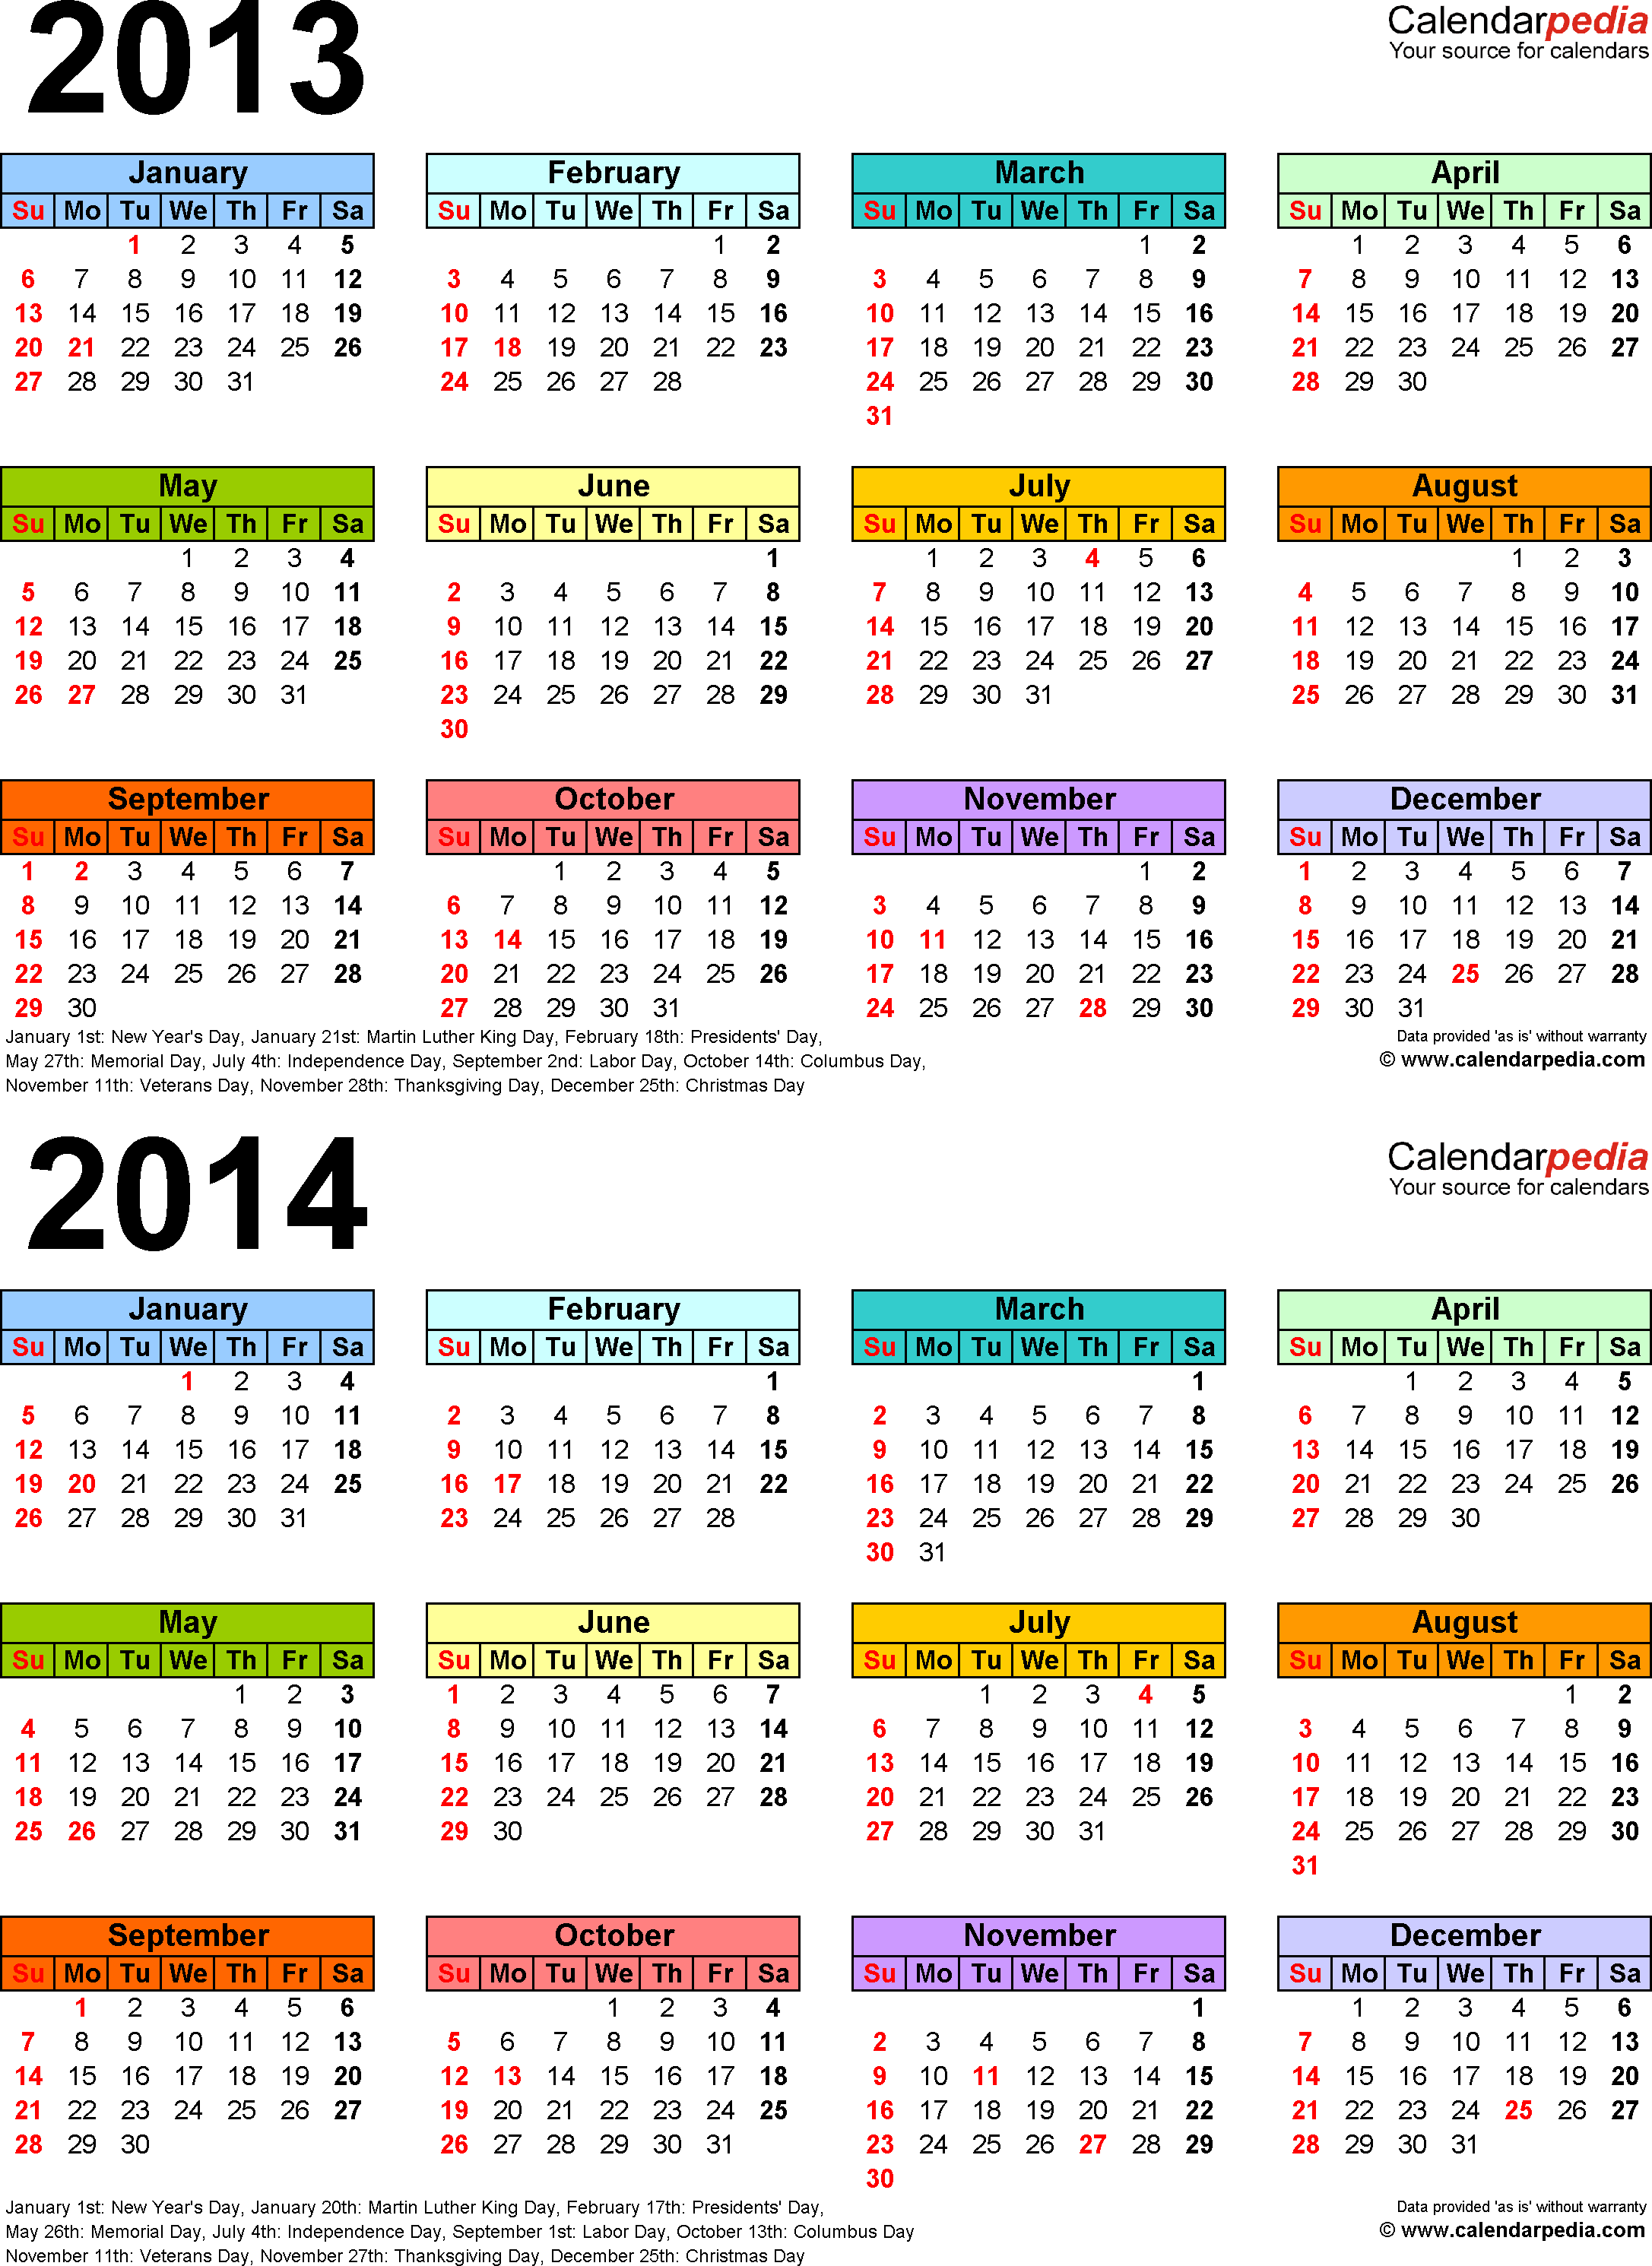 Download Template 3: PDF template for two year calendar 2013/2014 (portrait orientation, 1 page, years stacked, multi-colored)